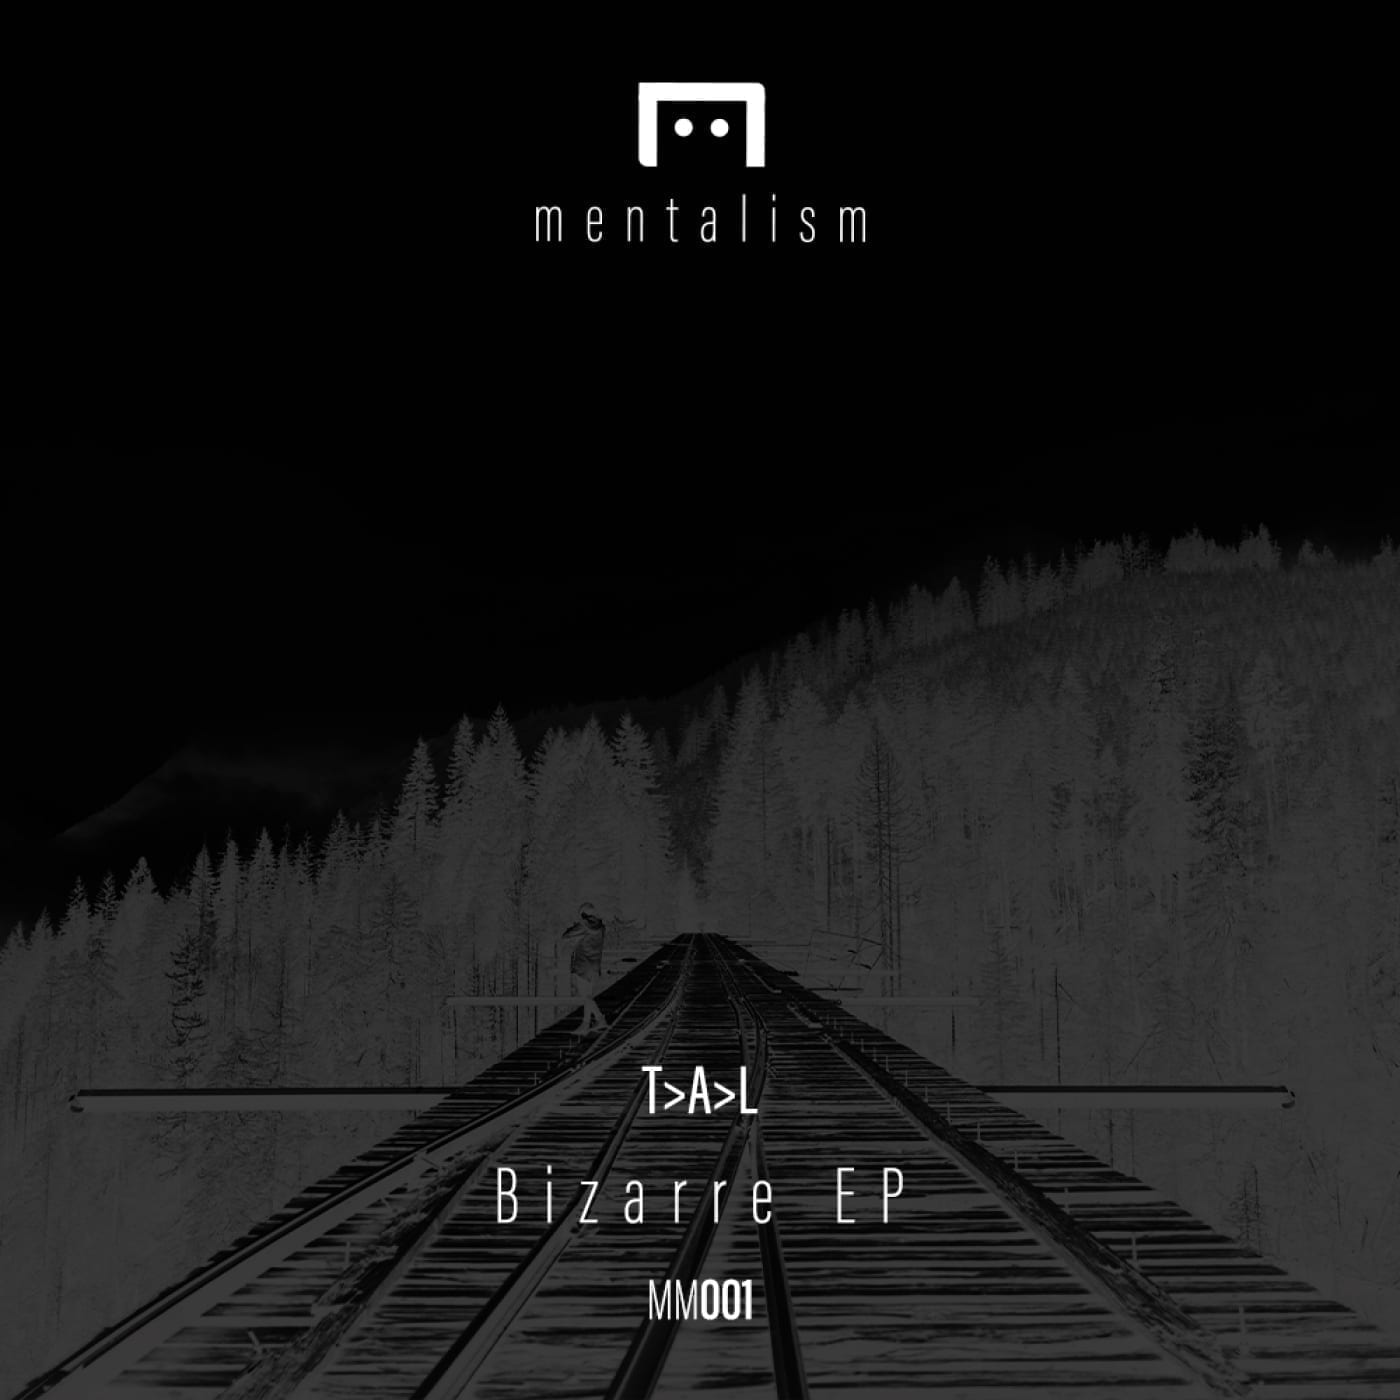 """The first release on the newborn label Mentalism comes by TAL, with his """"Bizarre EP"""" MM001"""